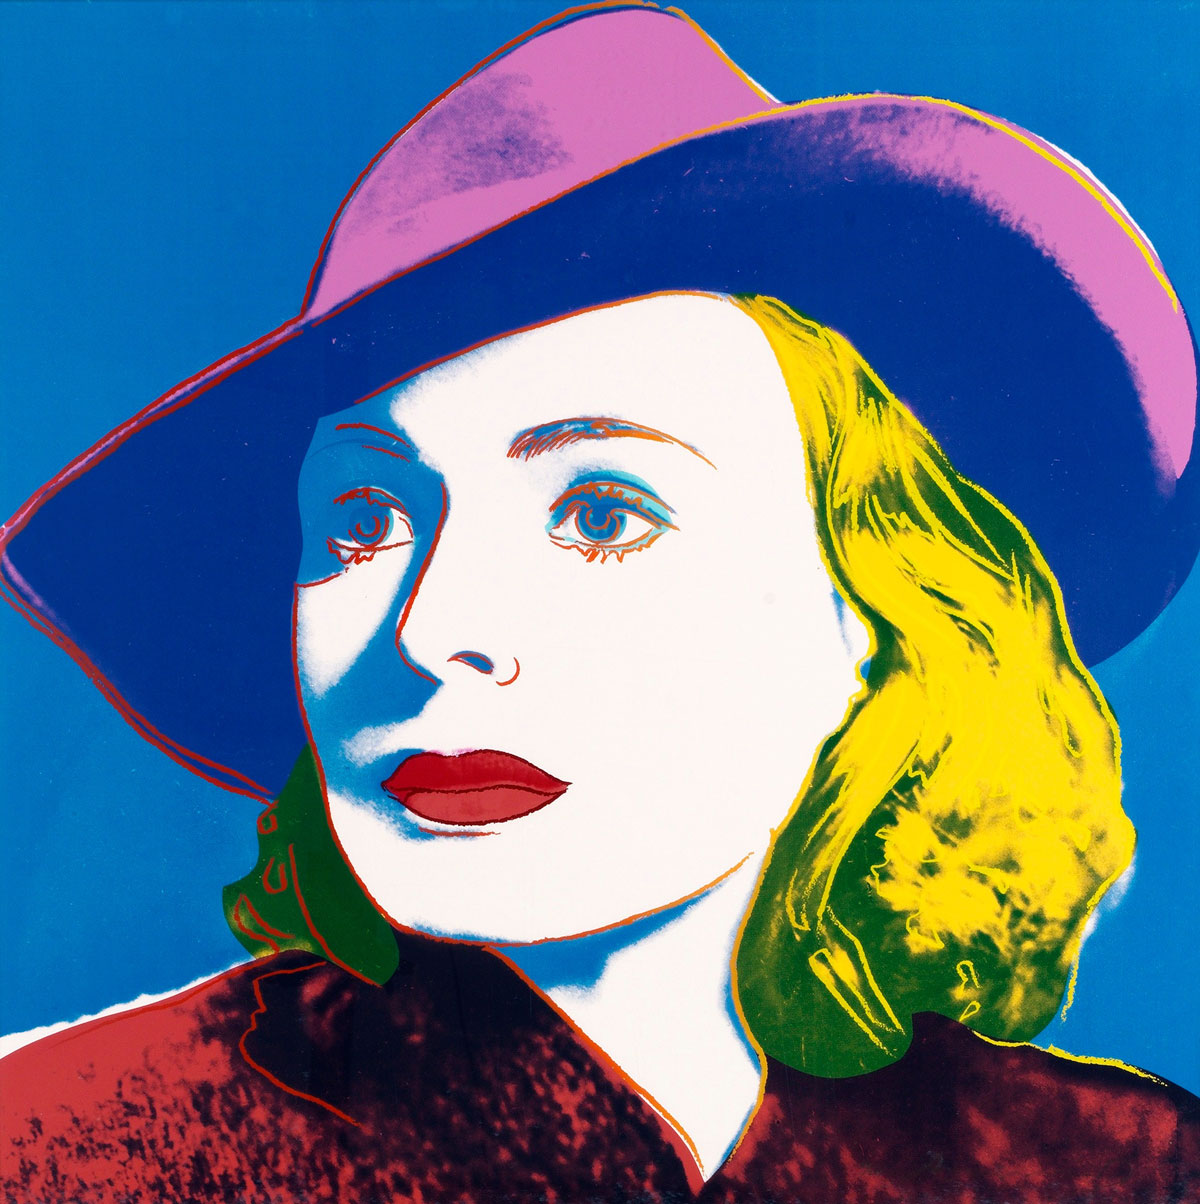 Ingrid Bergman With Hat (fs Ii.315) by Andy Warhol